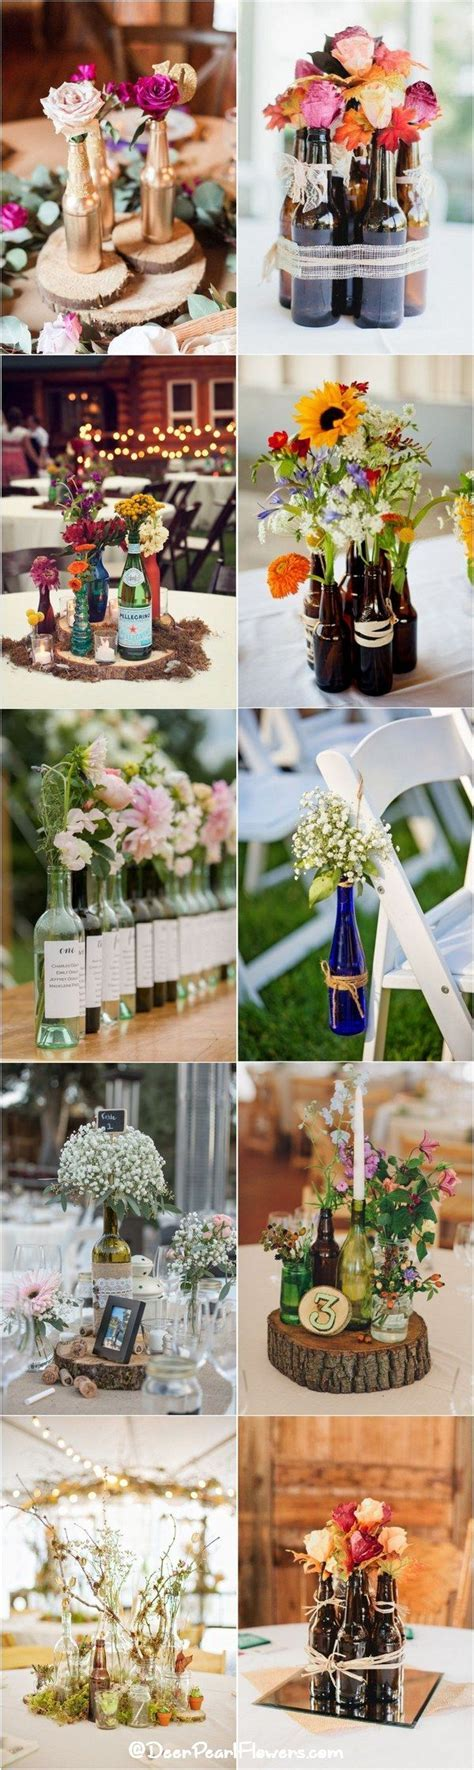 1000  ideas about Vineyard Wedding Themes on Pinterest